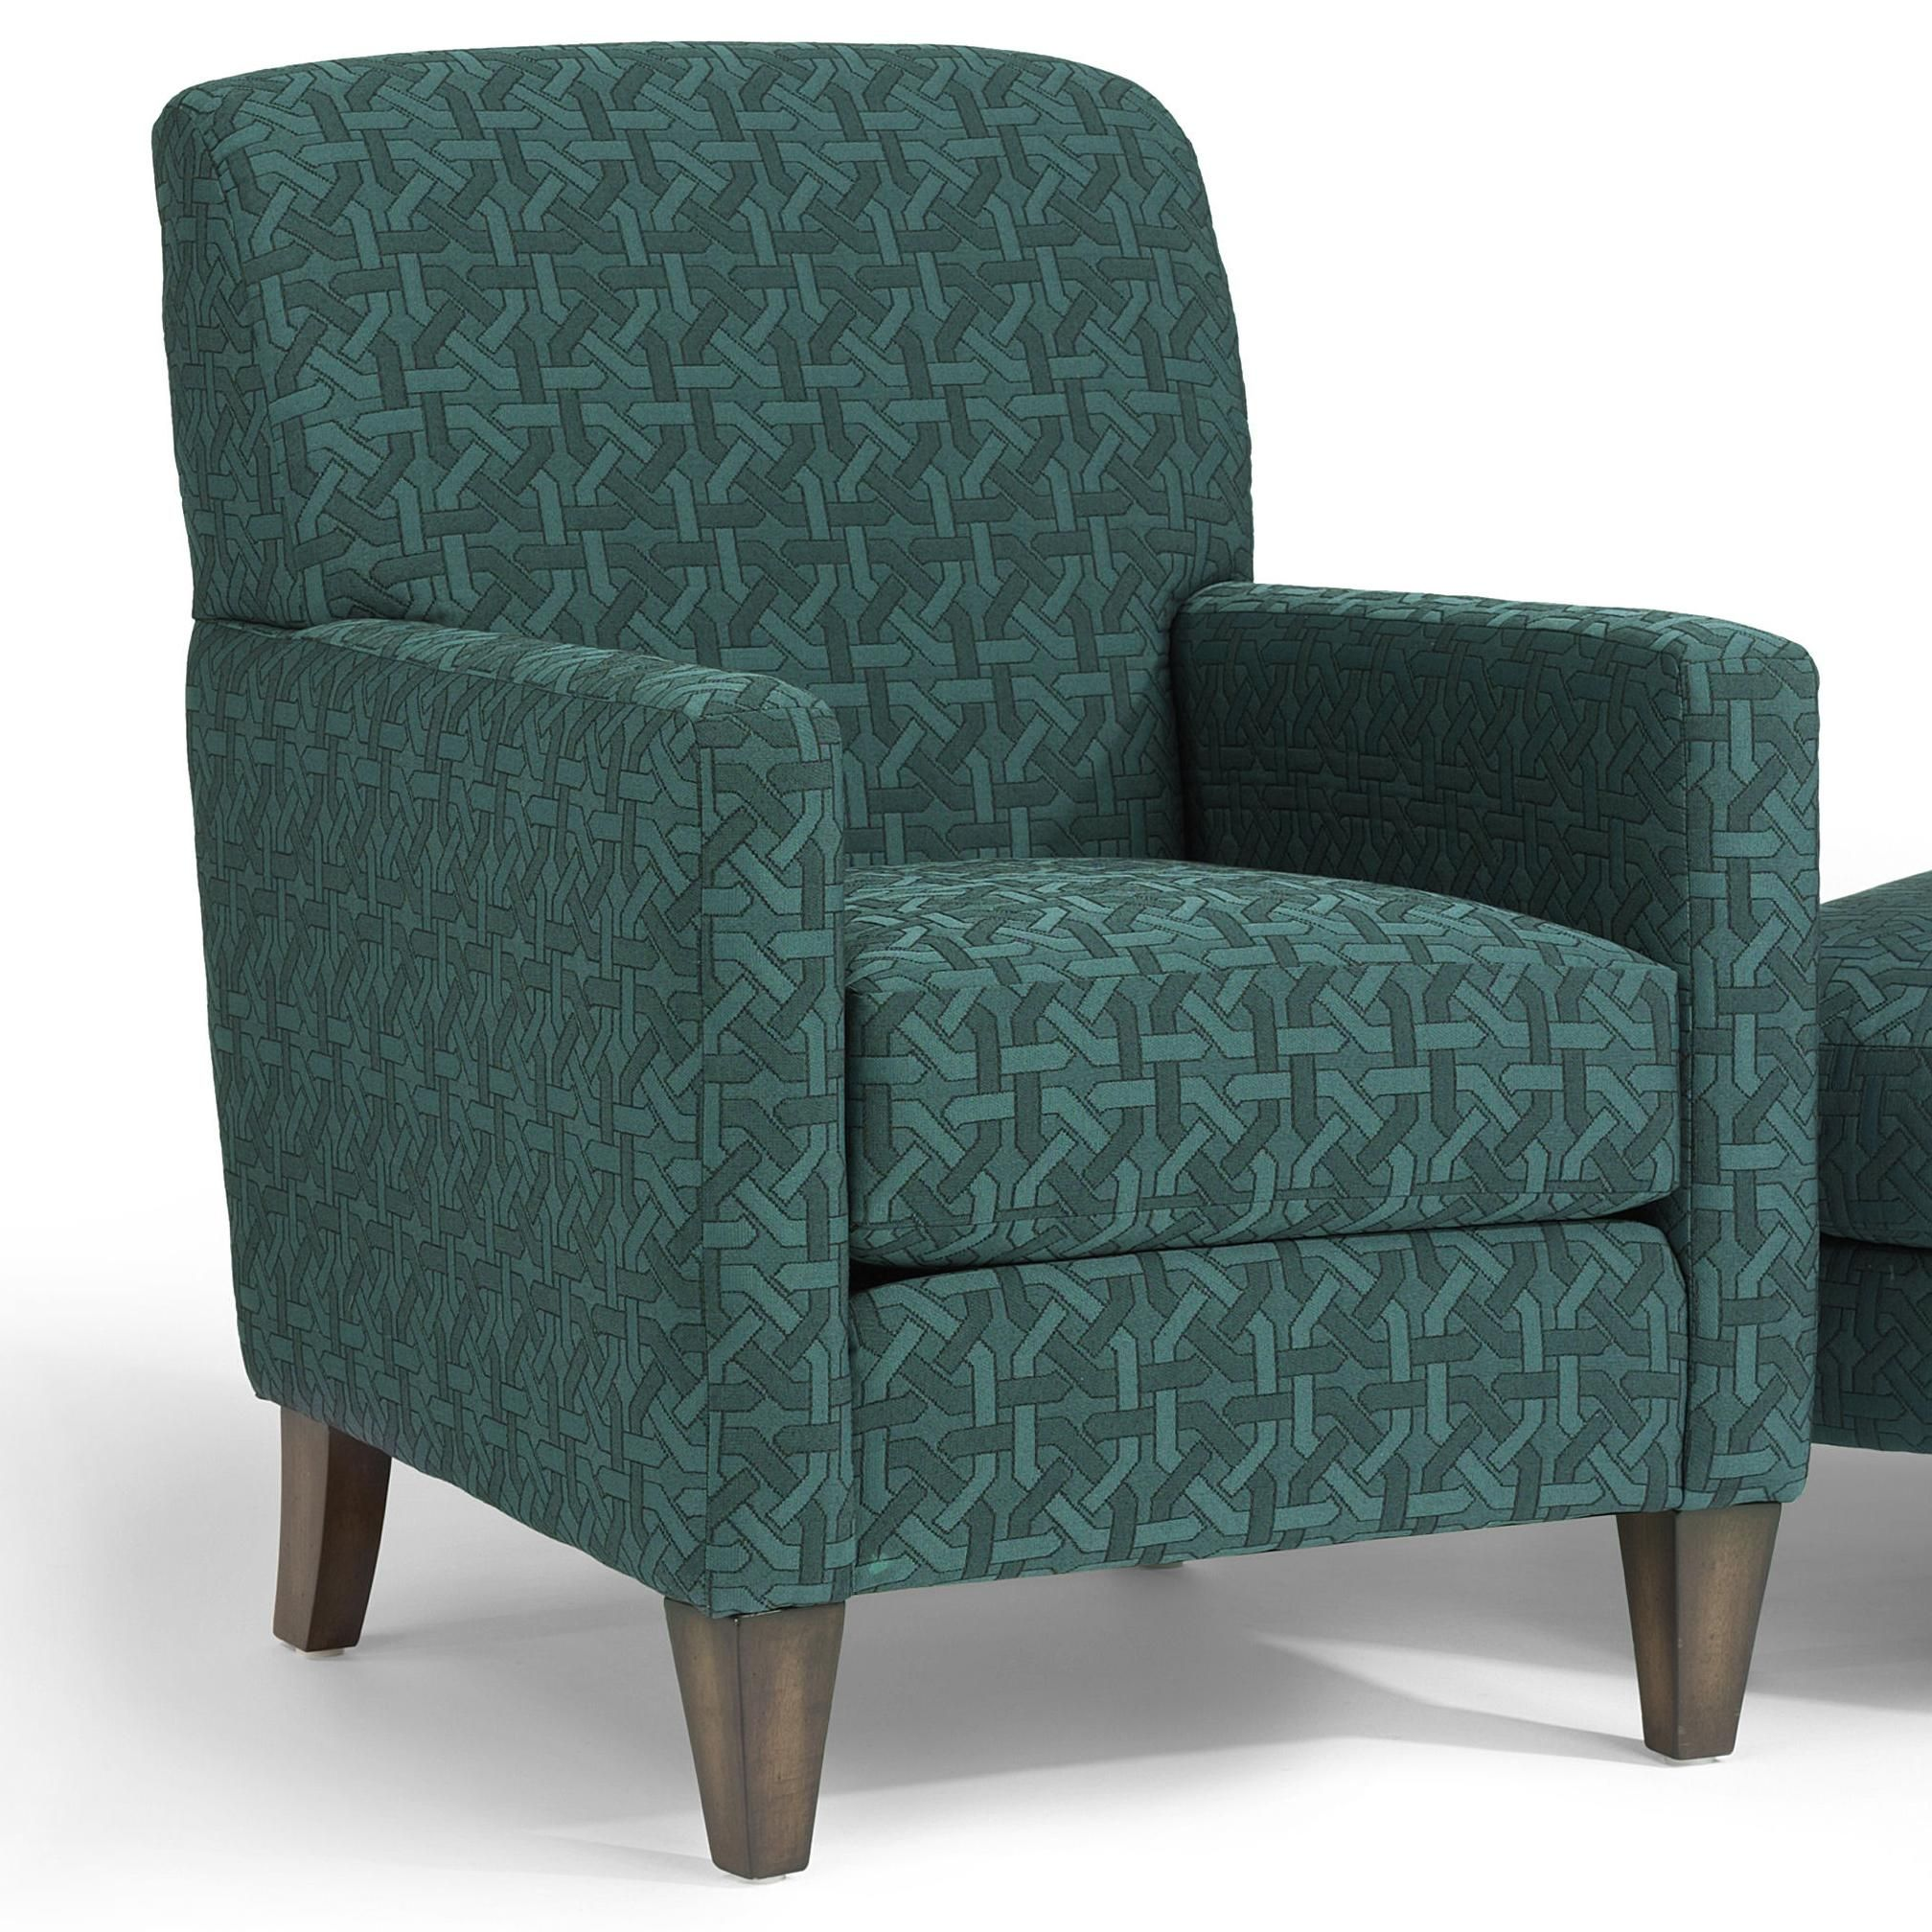 Best Accents Cute Chair By Flexsteel Chic Accent Chairs 640 x 480